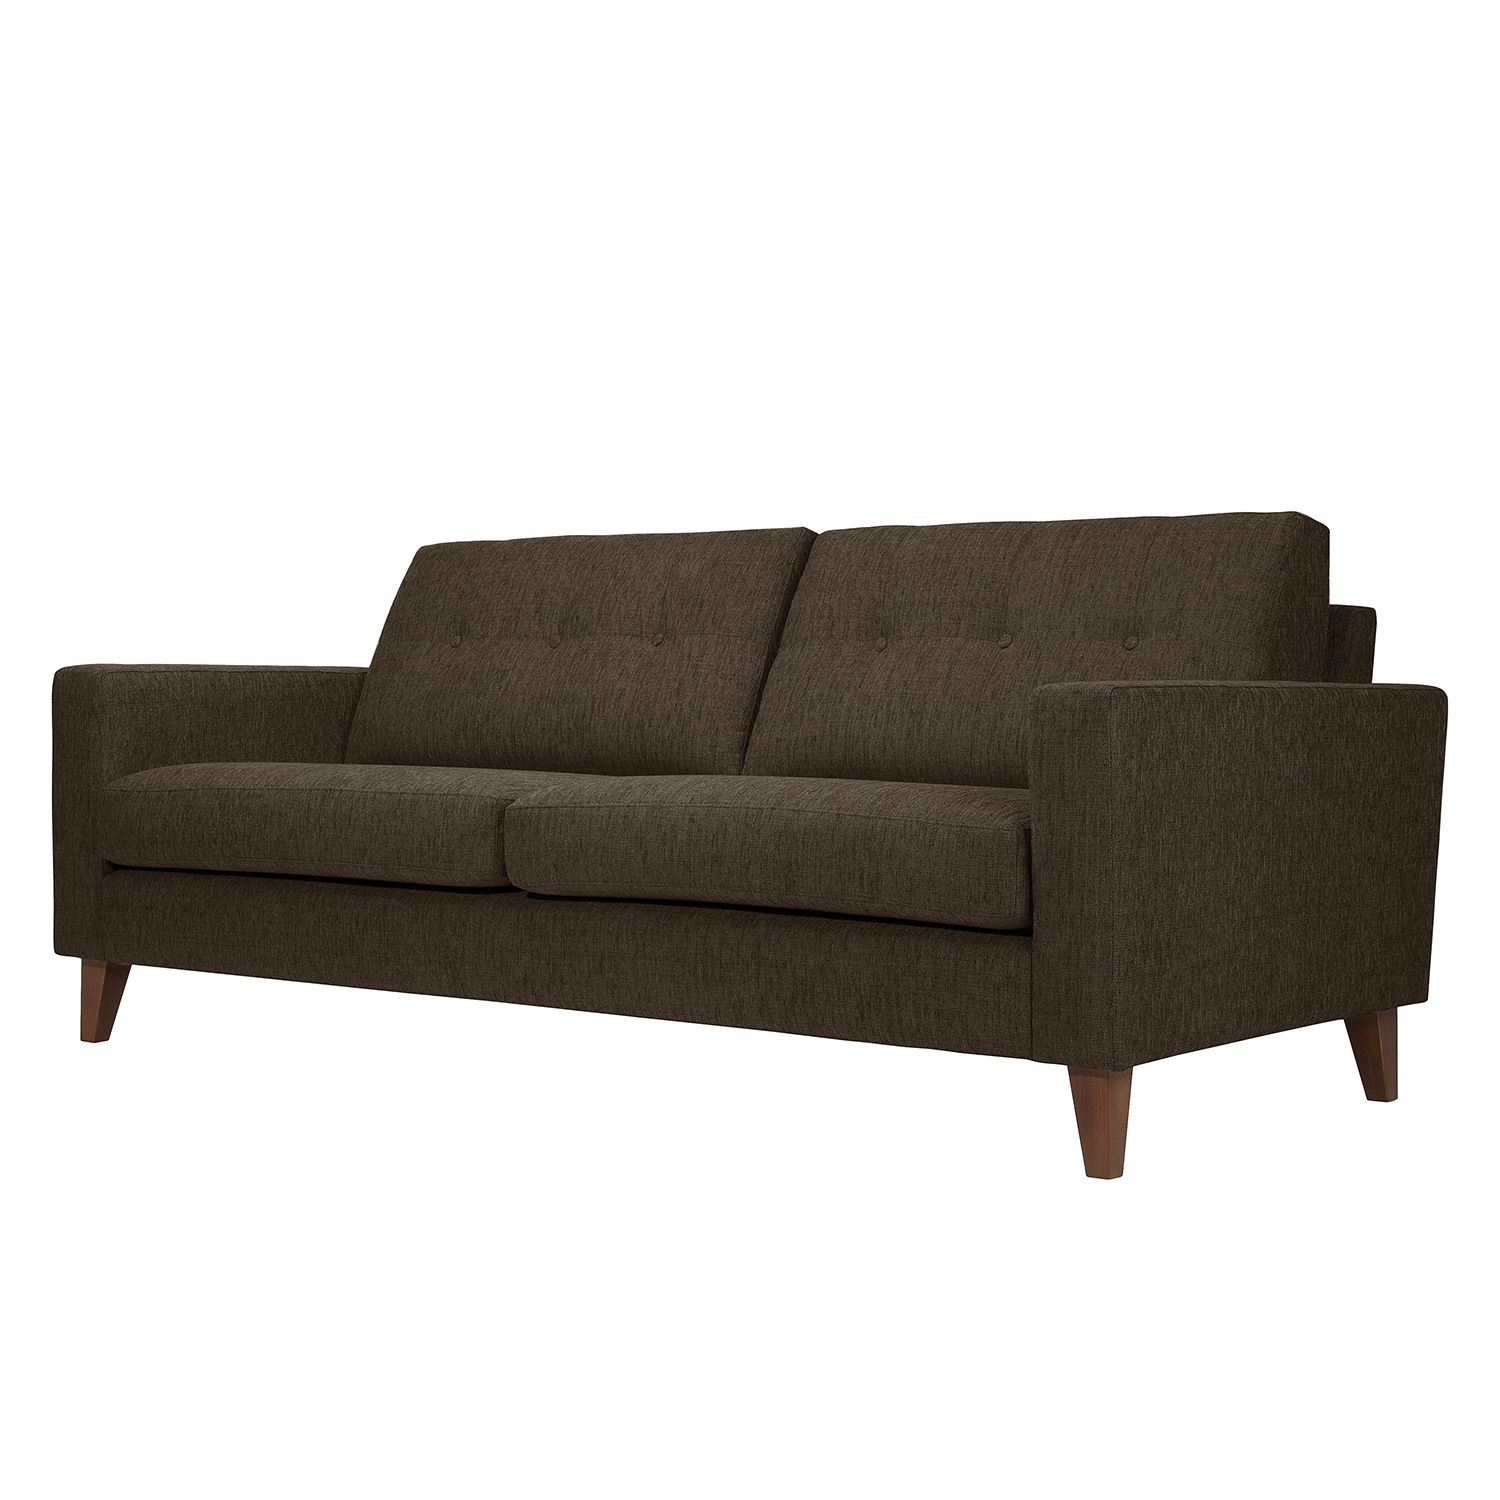 sofa cooper 3 sitzer webstoff stoff kiara grau braun studio copenhagen online kaufen bei woonio. Black Bedroom Furniture Sets. Home Design Ideas